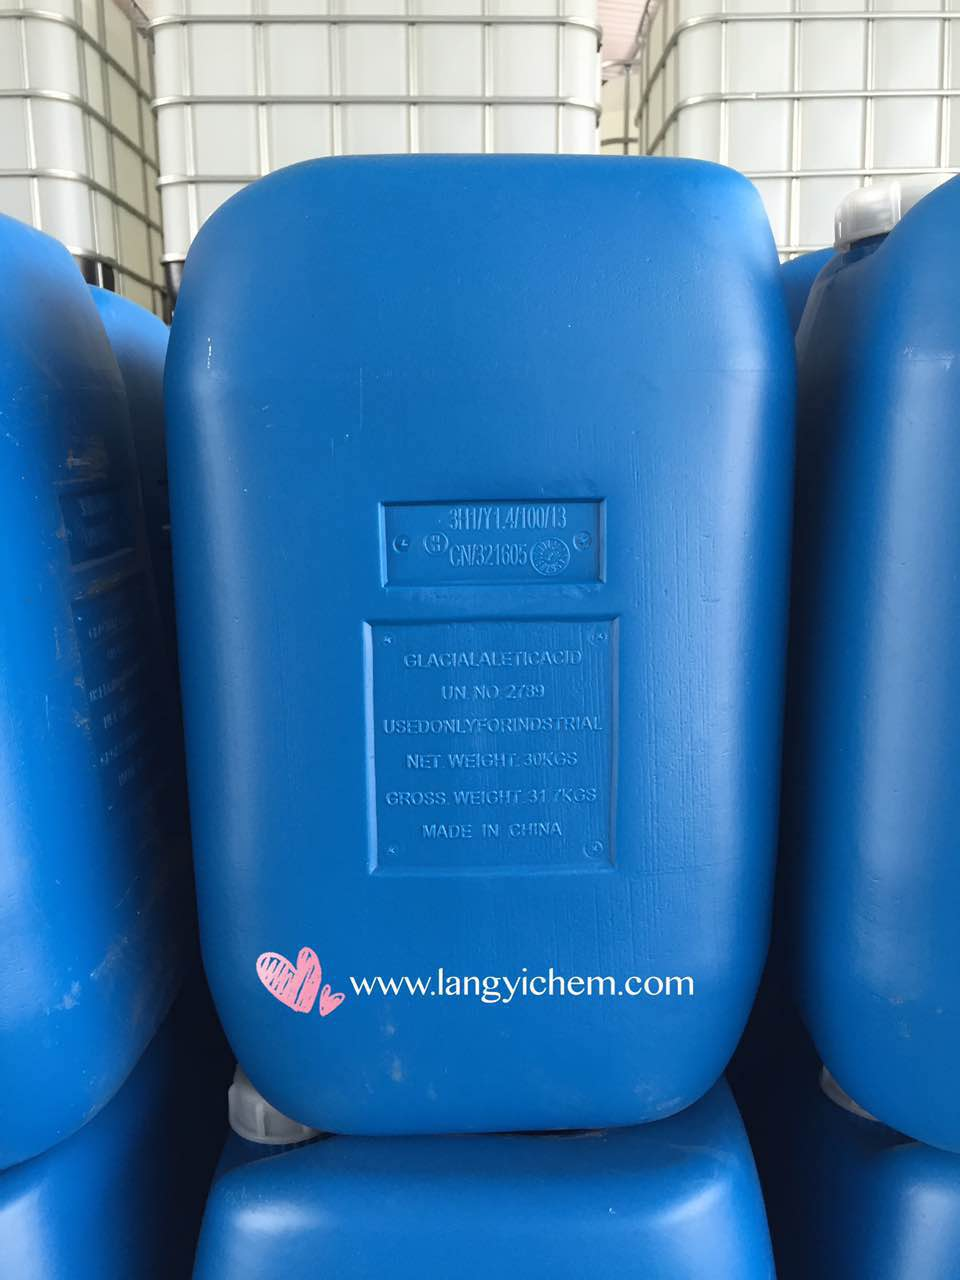 glacial acetic acid plant food grade &industrial grade